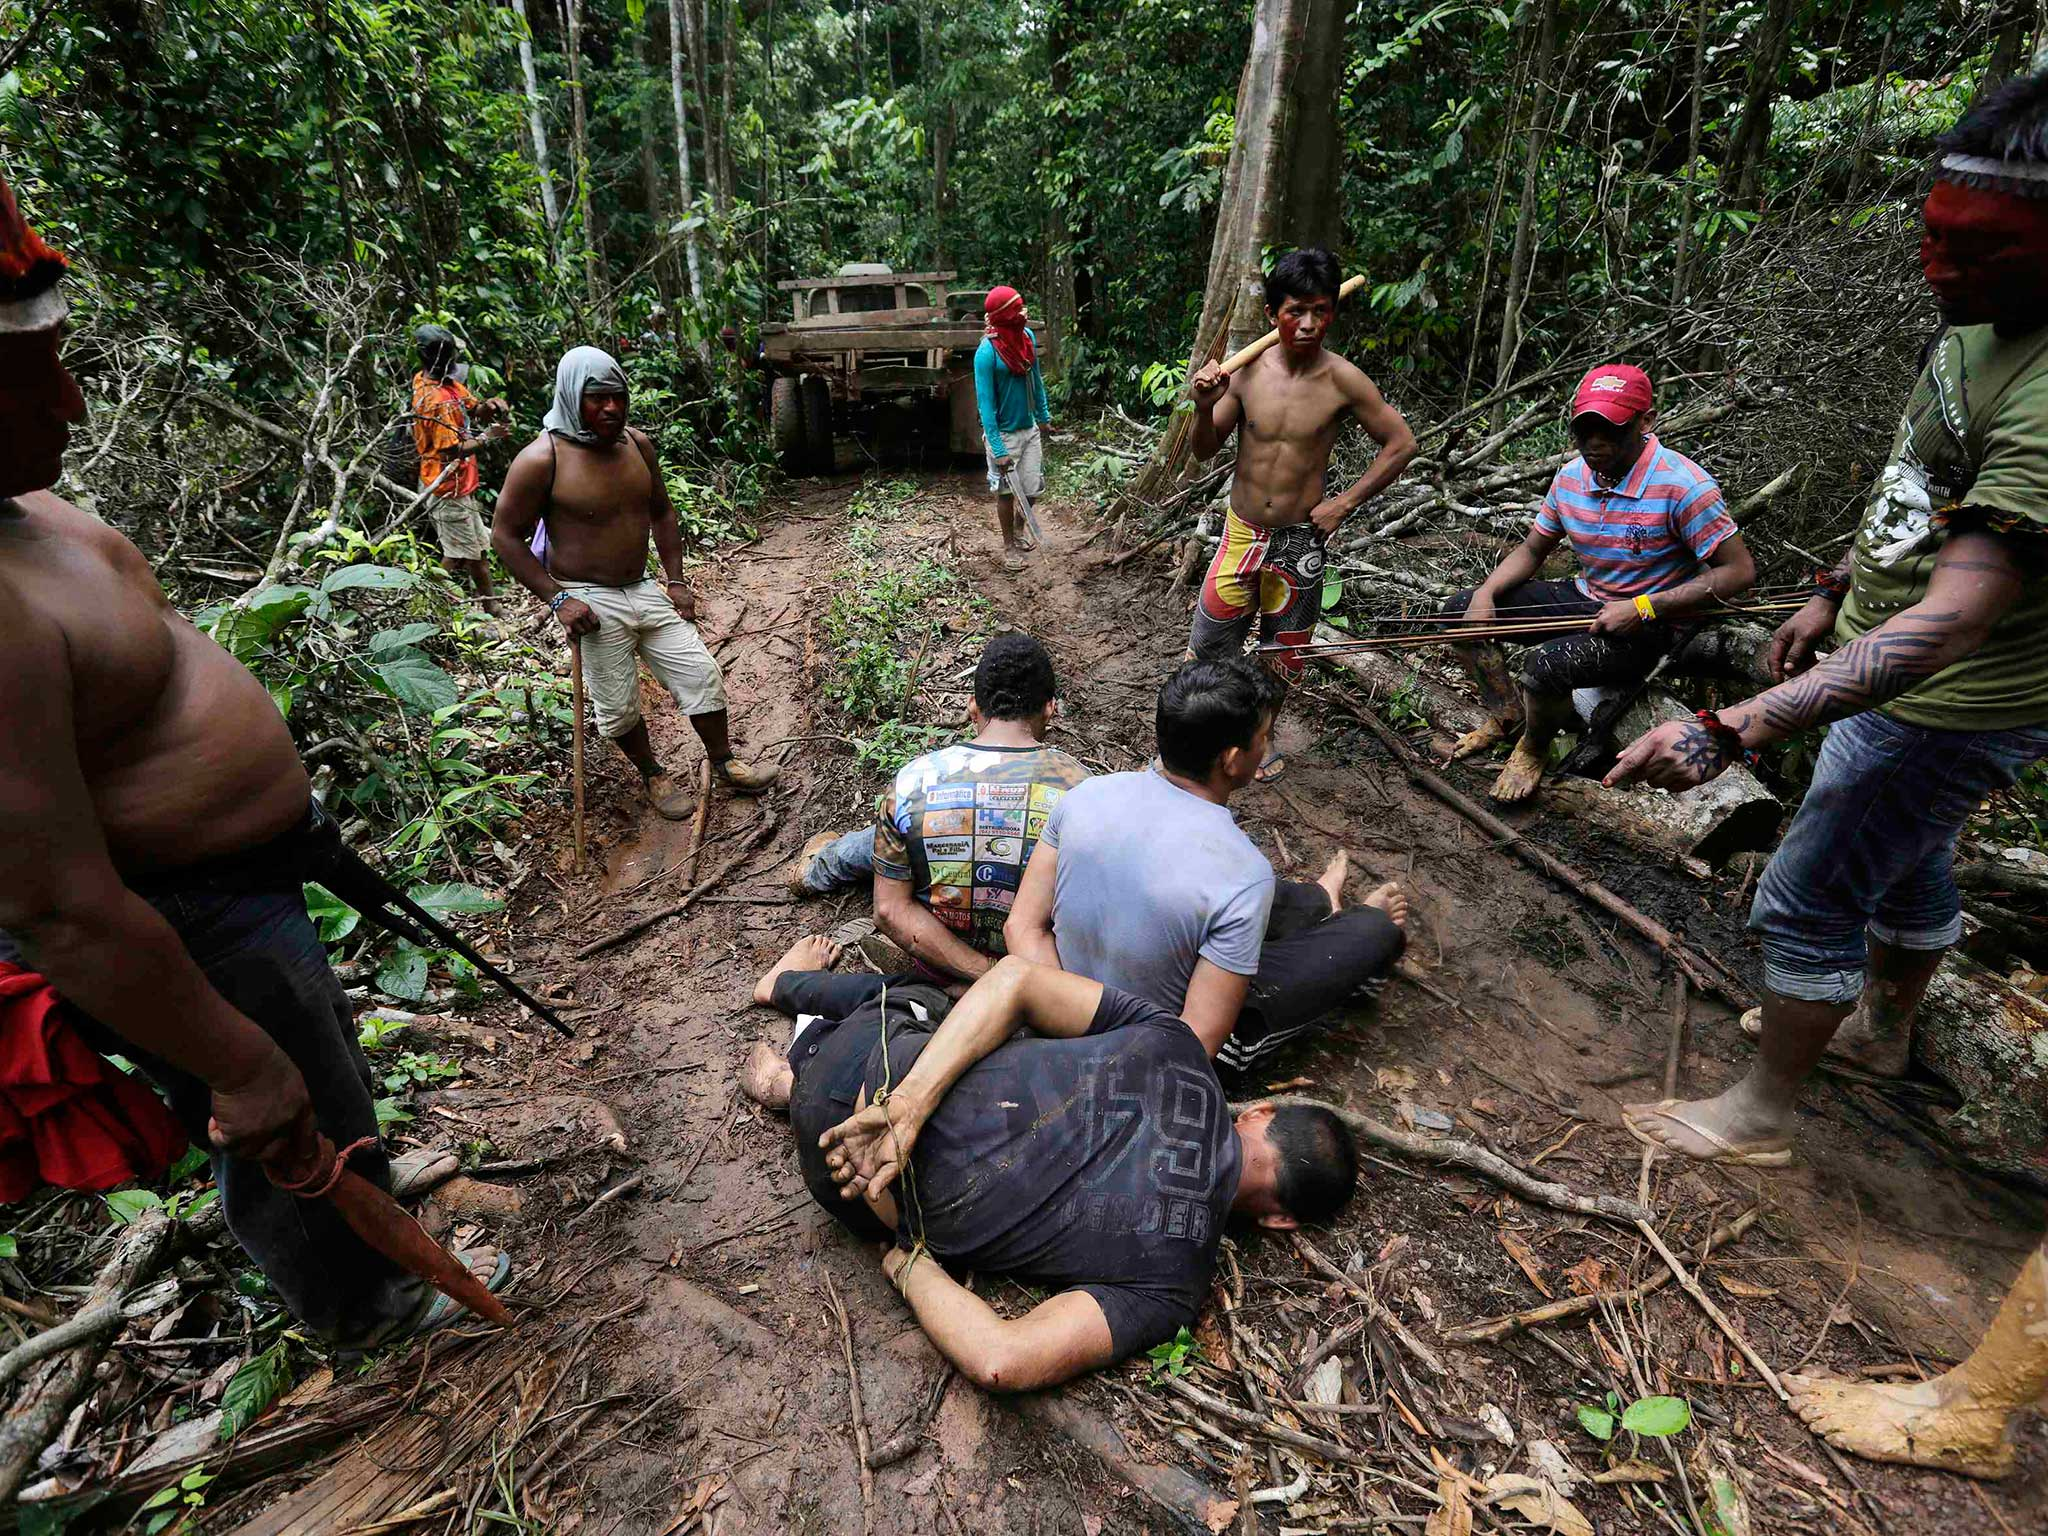 Indigenous sex in the jungle